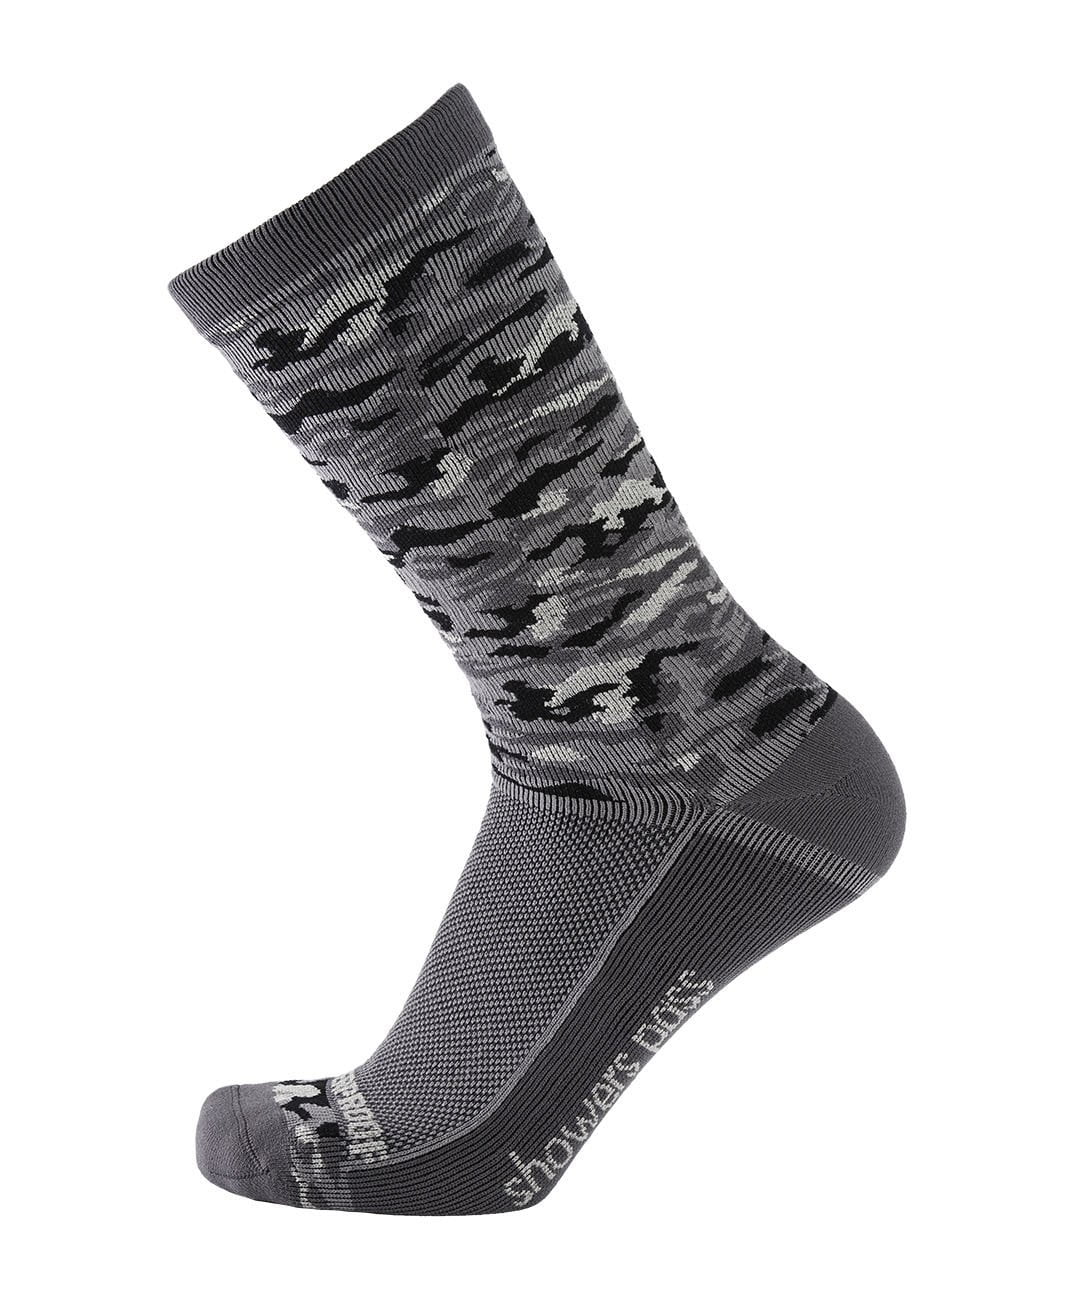 Lightweight Waterproof Socks - Crosspoint Camo